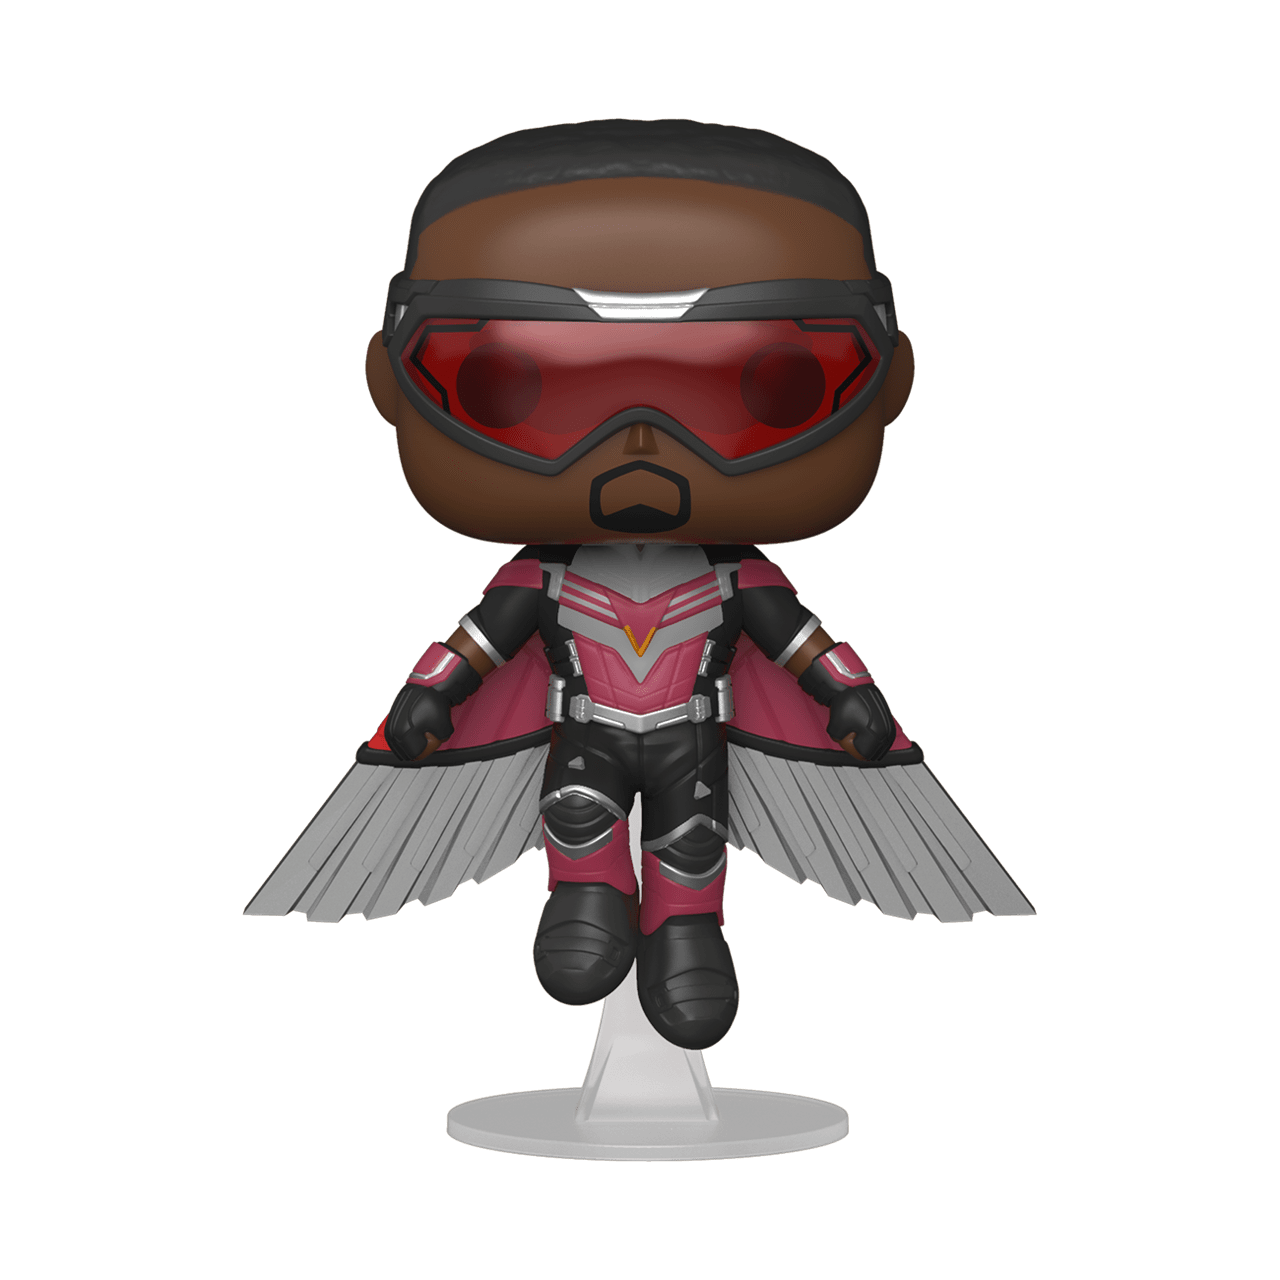 Flying Falcon (812) The Falcon & Winter Soldier: Marvel Pop Vinyl - 1